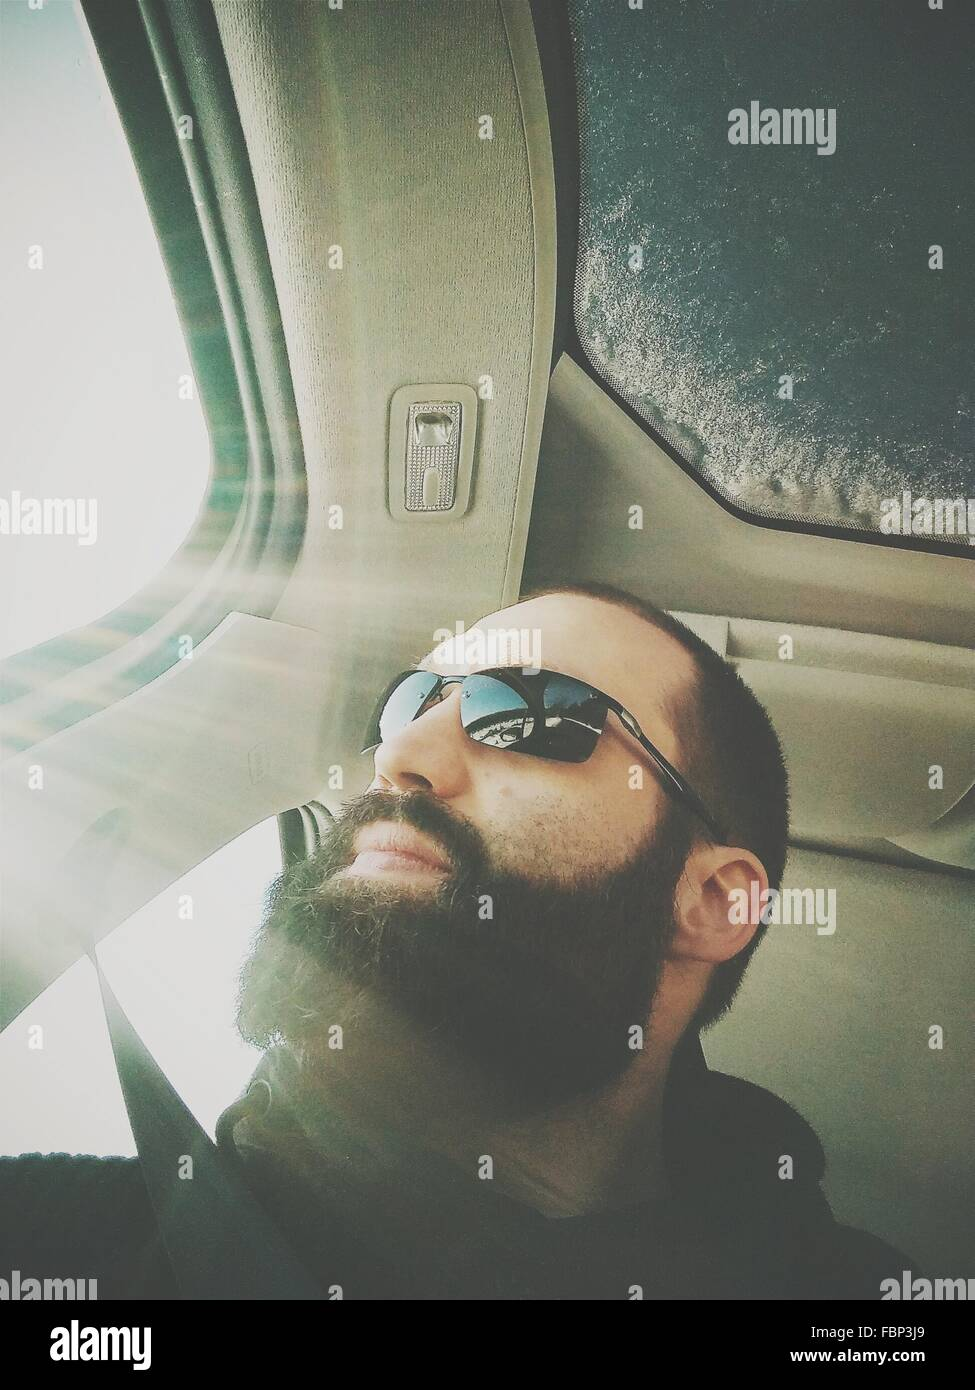 Low Angle View Of Young Man Wearing Sunglasses While Sitting In Car - Stock Image